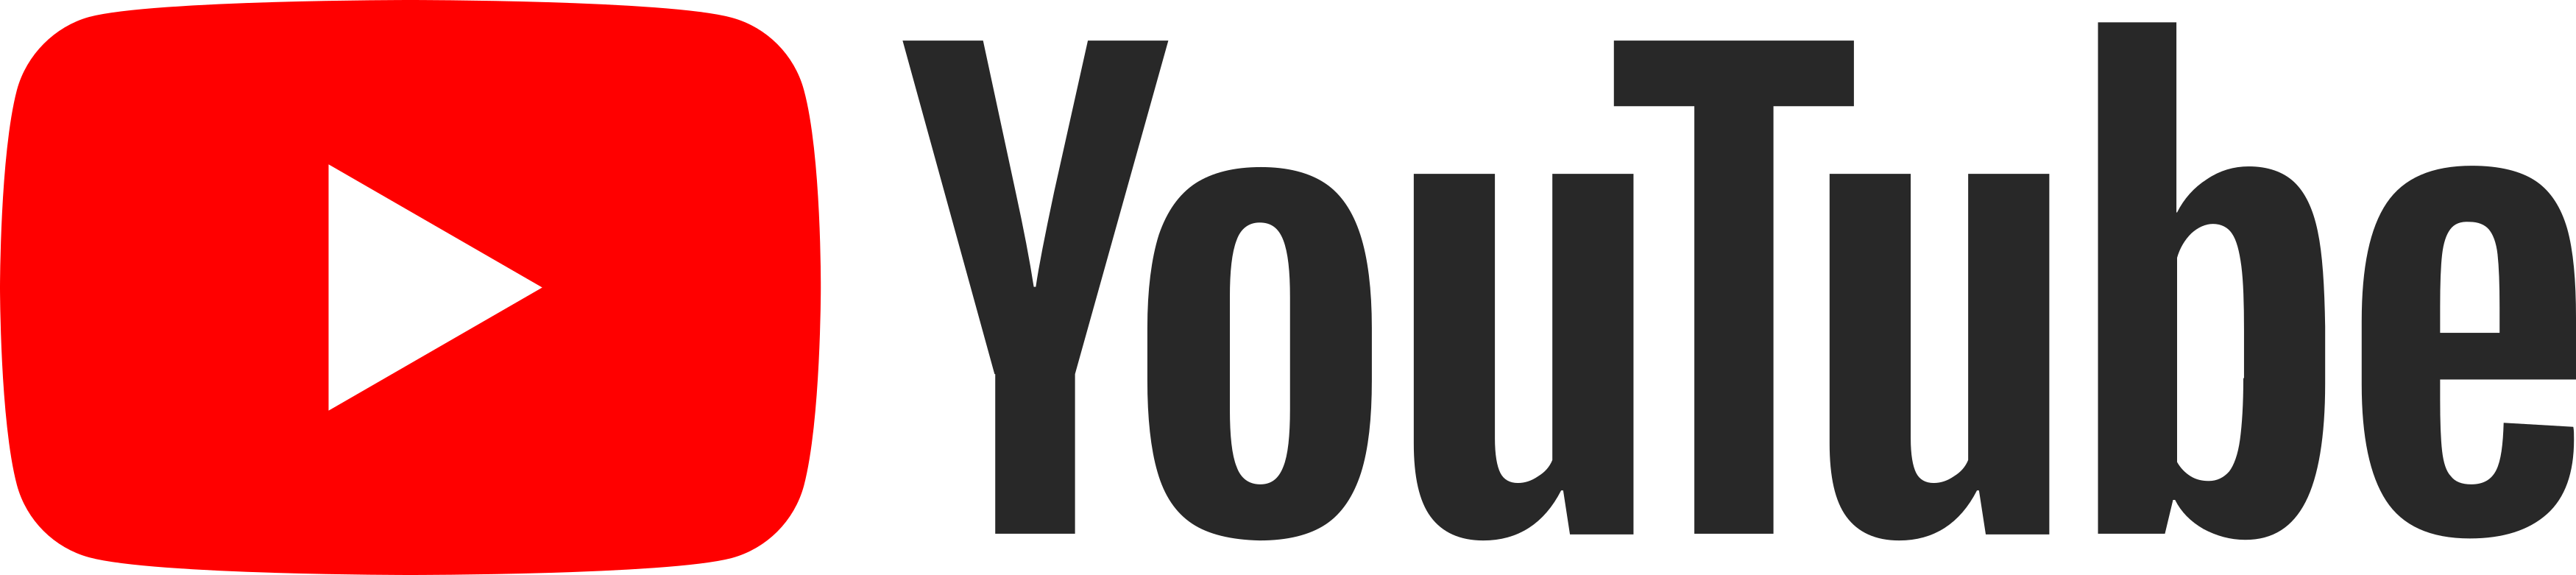 logo youtube png